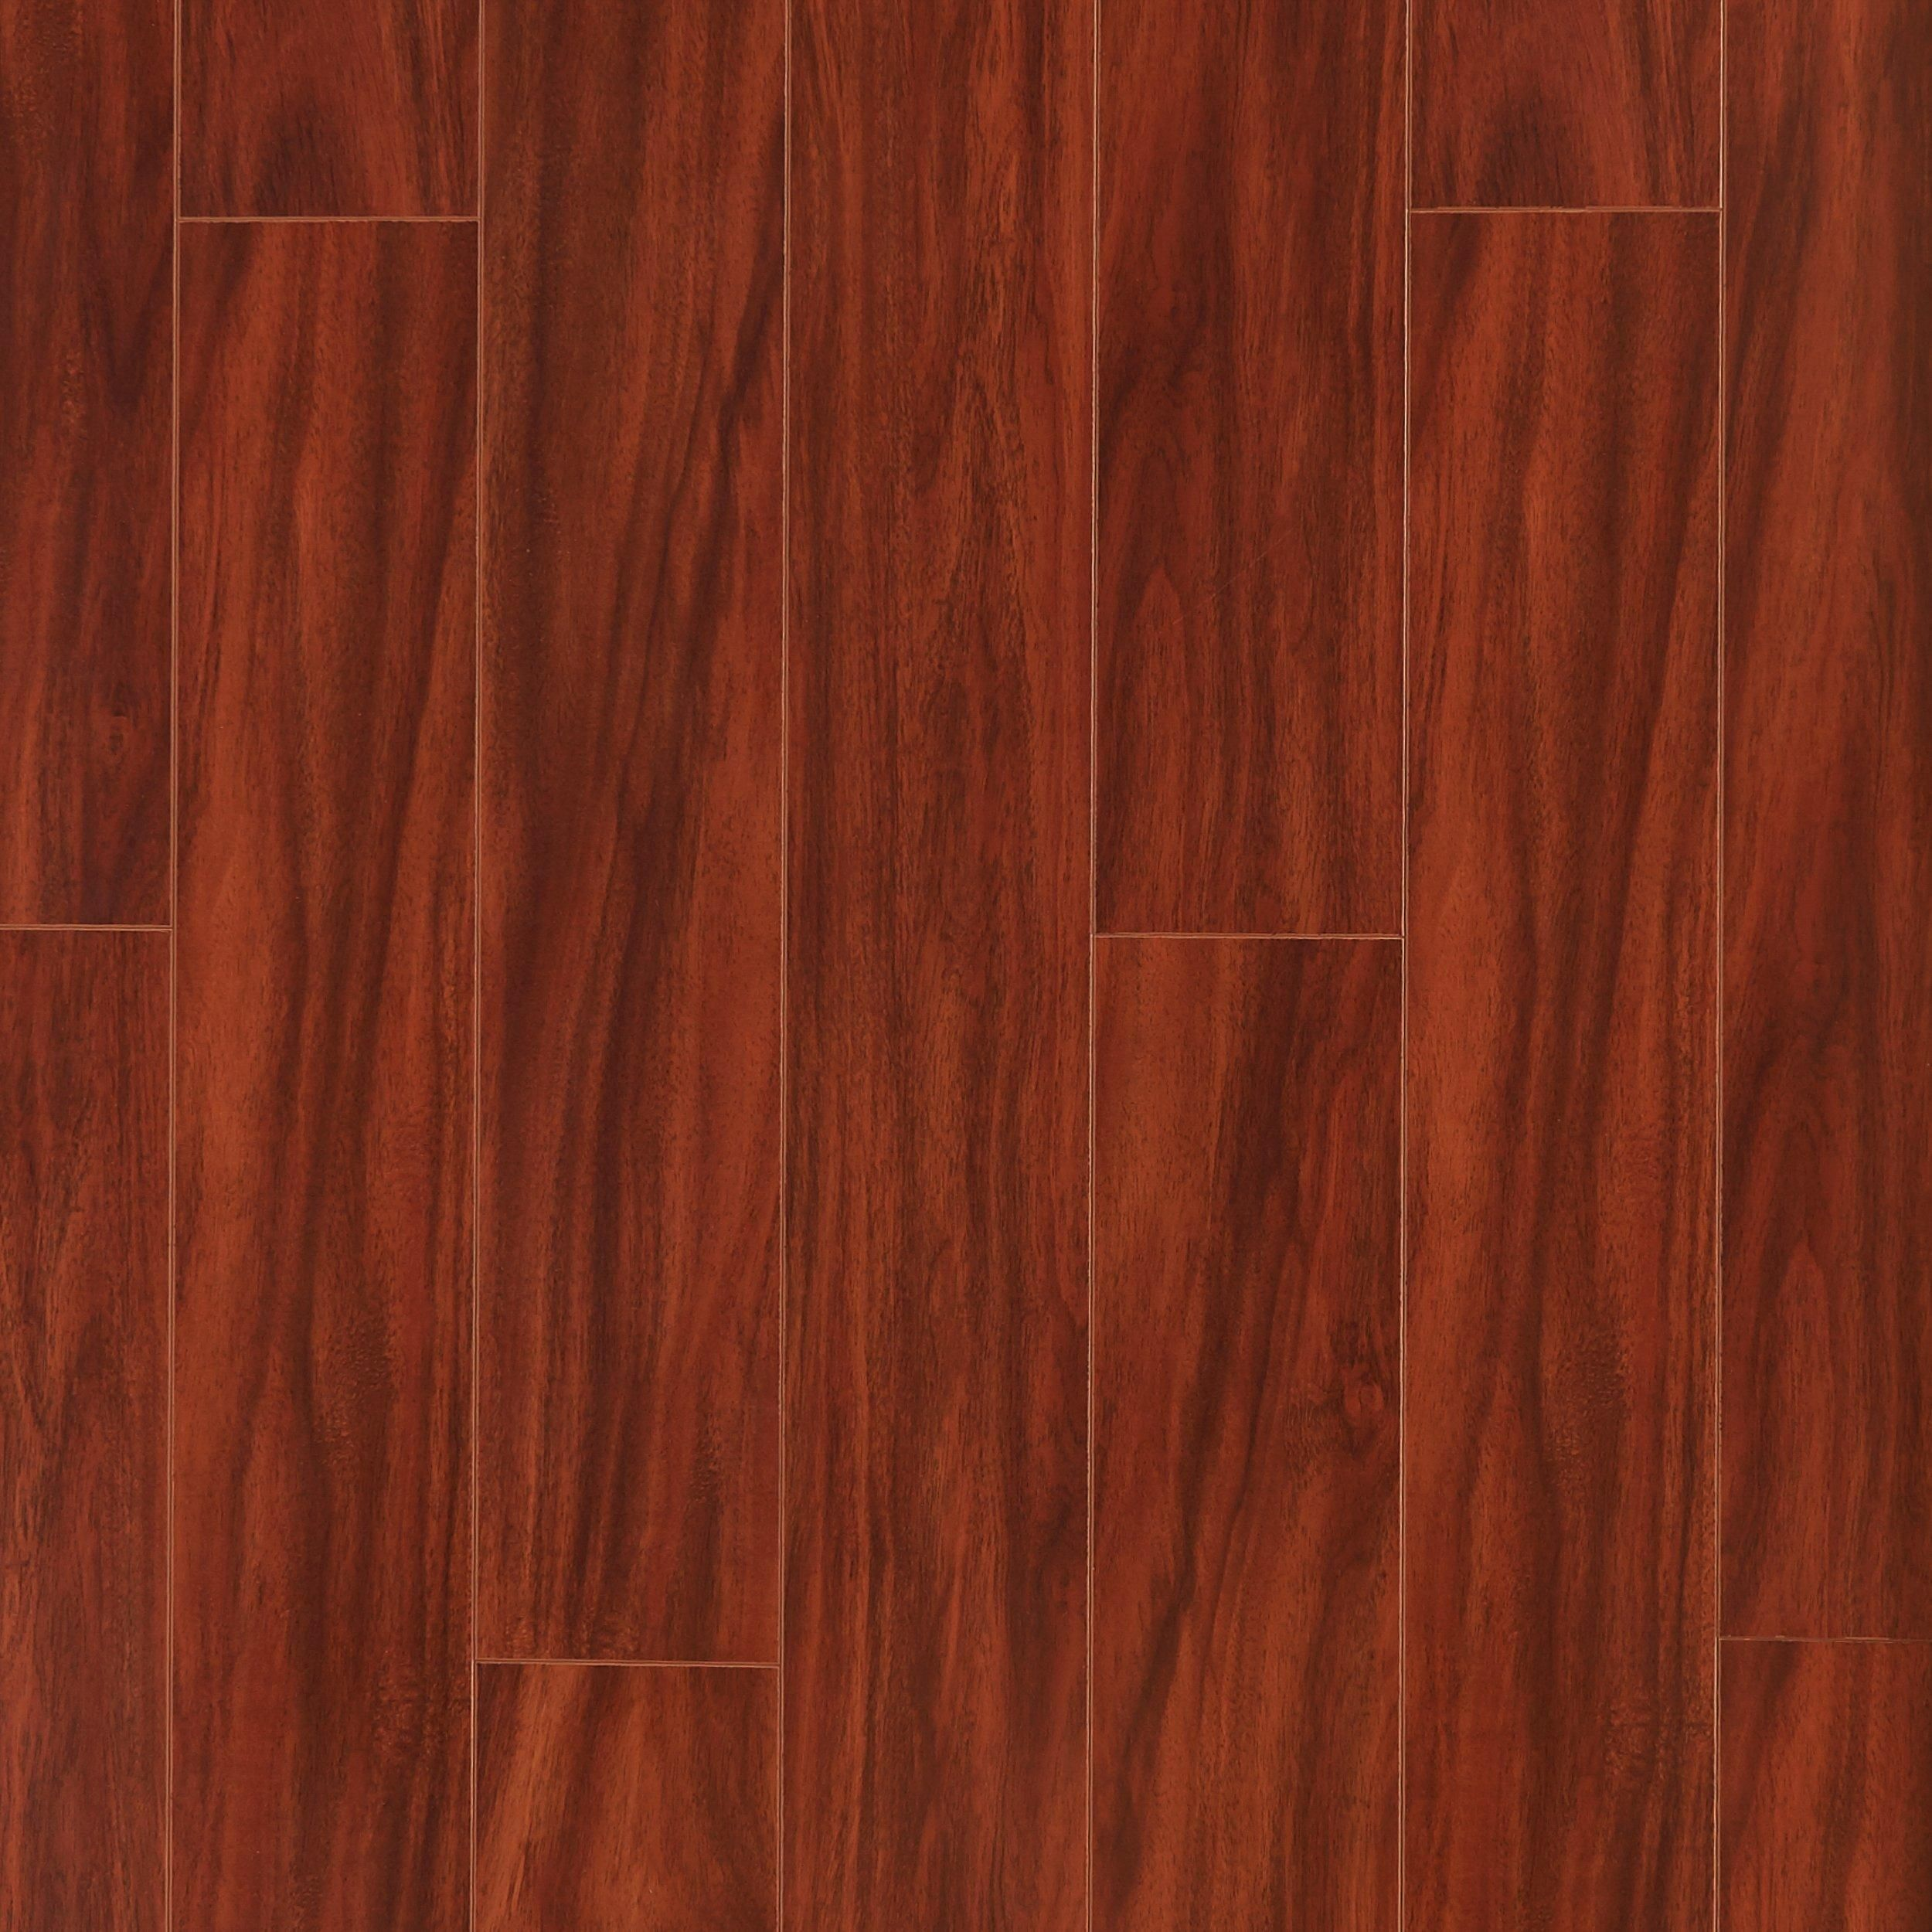 Brazilian Cherry High Gloss Laminate Brazilian Cherry Cherry